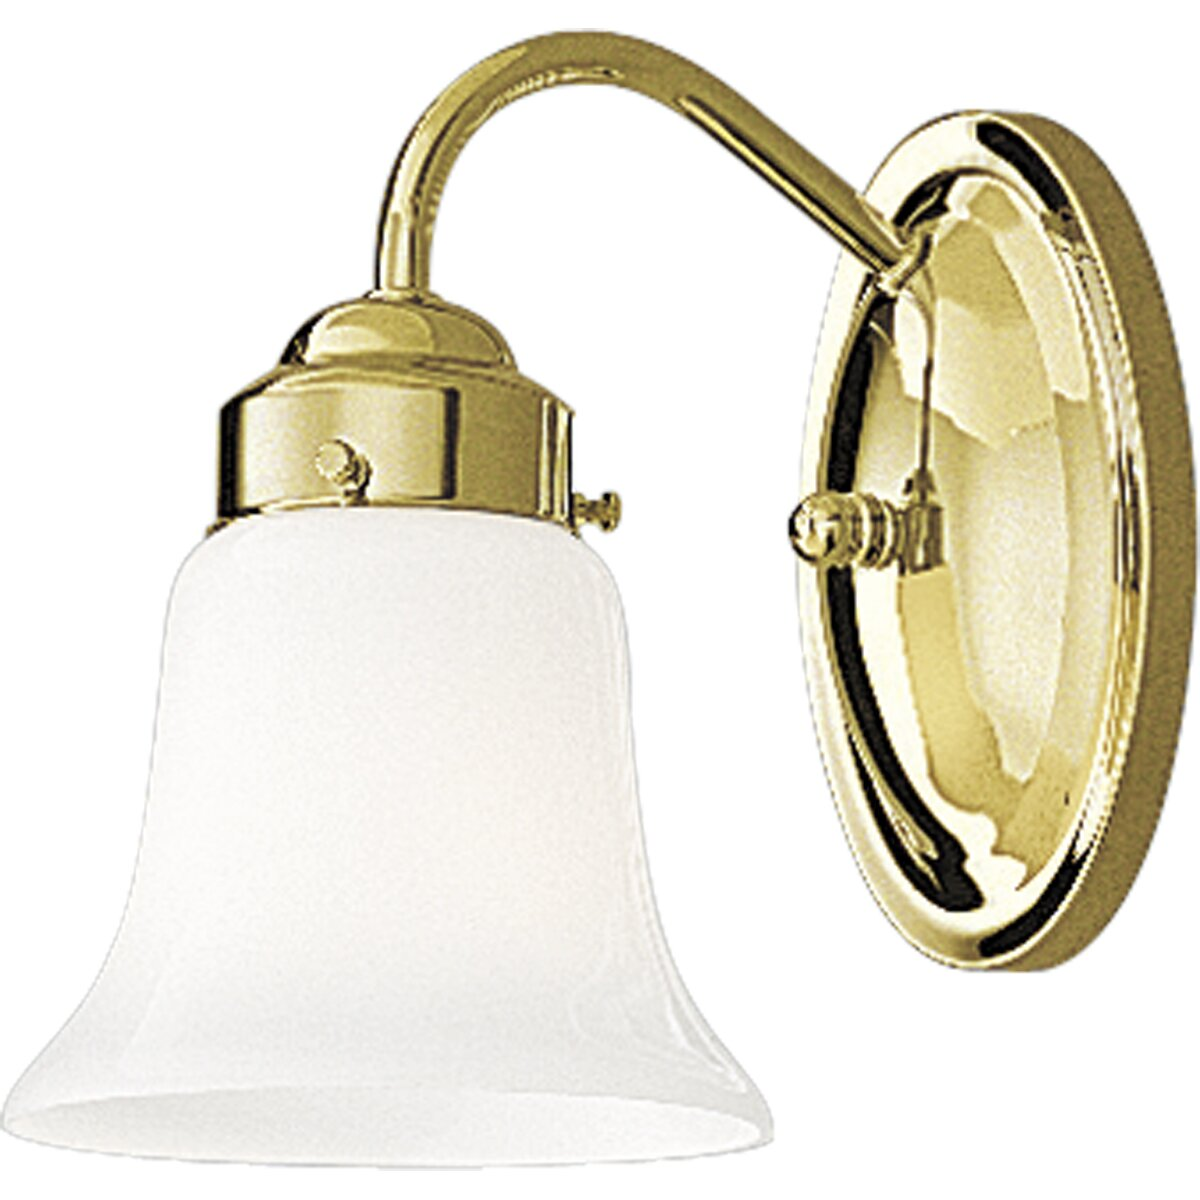 Wall Sconces At Wayfair : Progress Lighting Opal 1 Light Wall Sconce & Reviews Wayfair